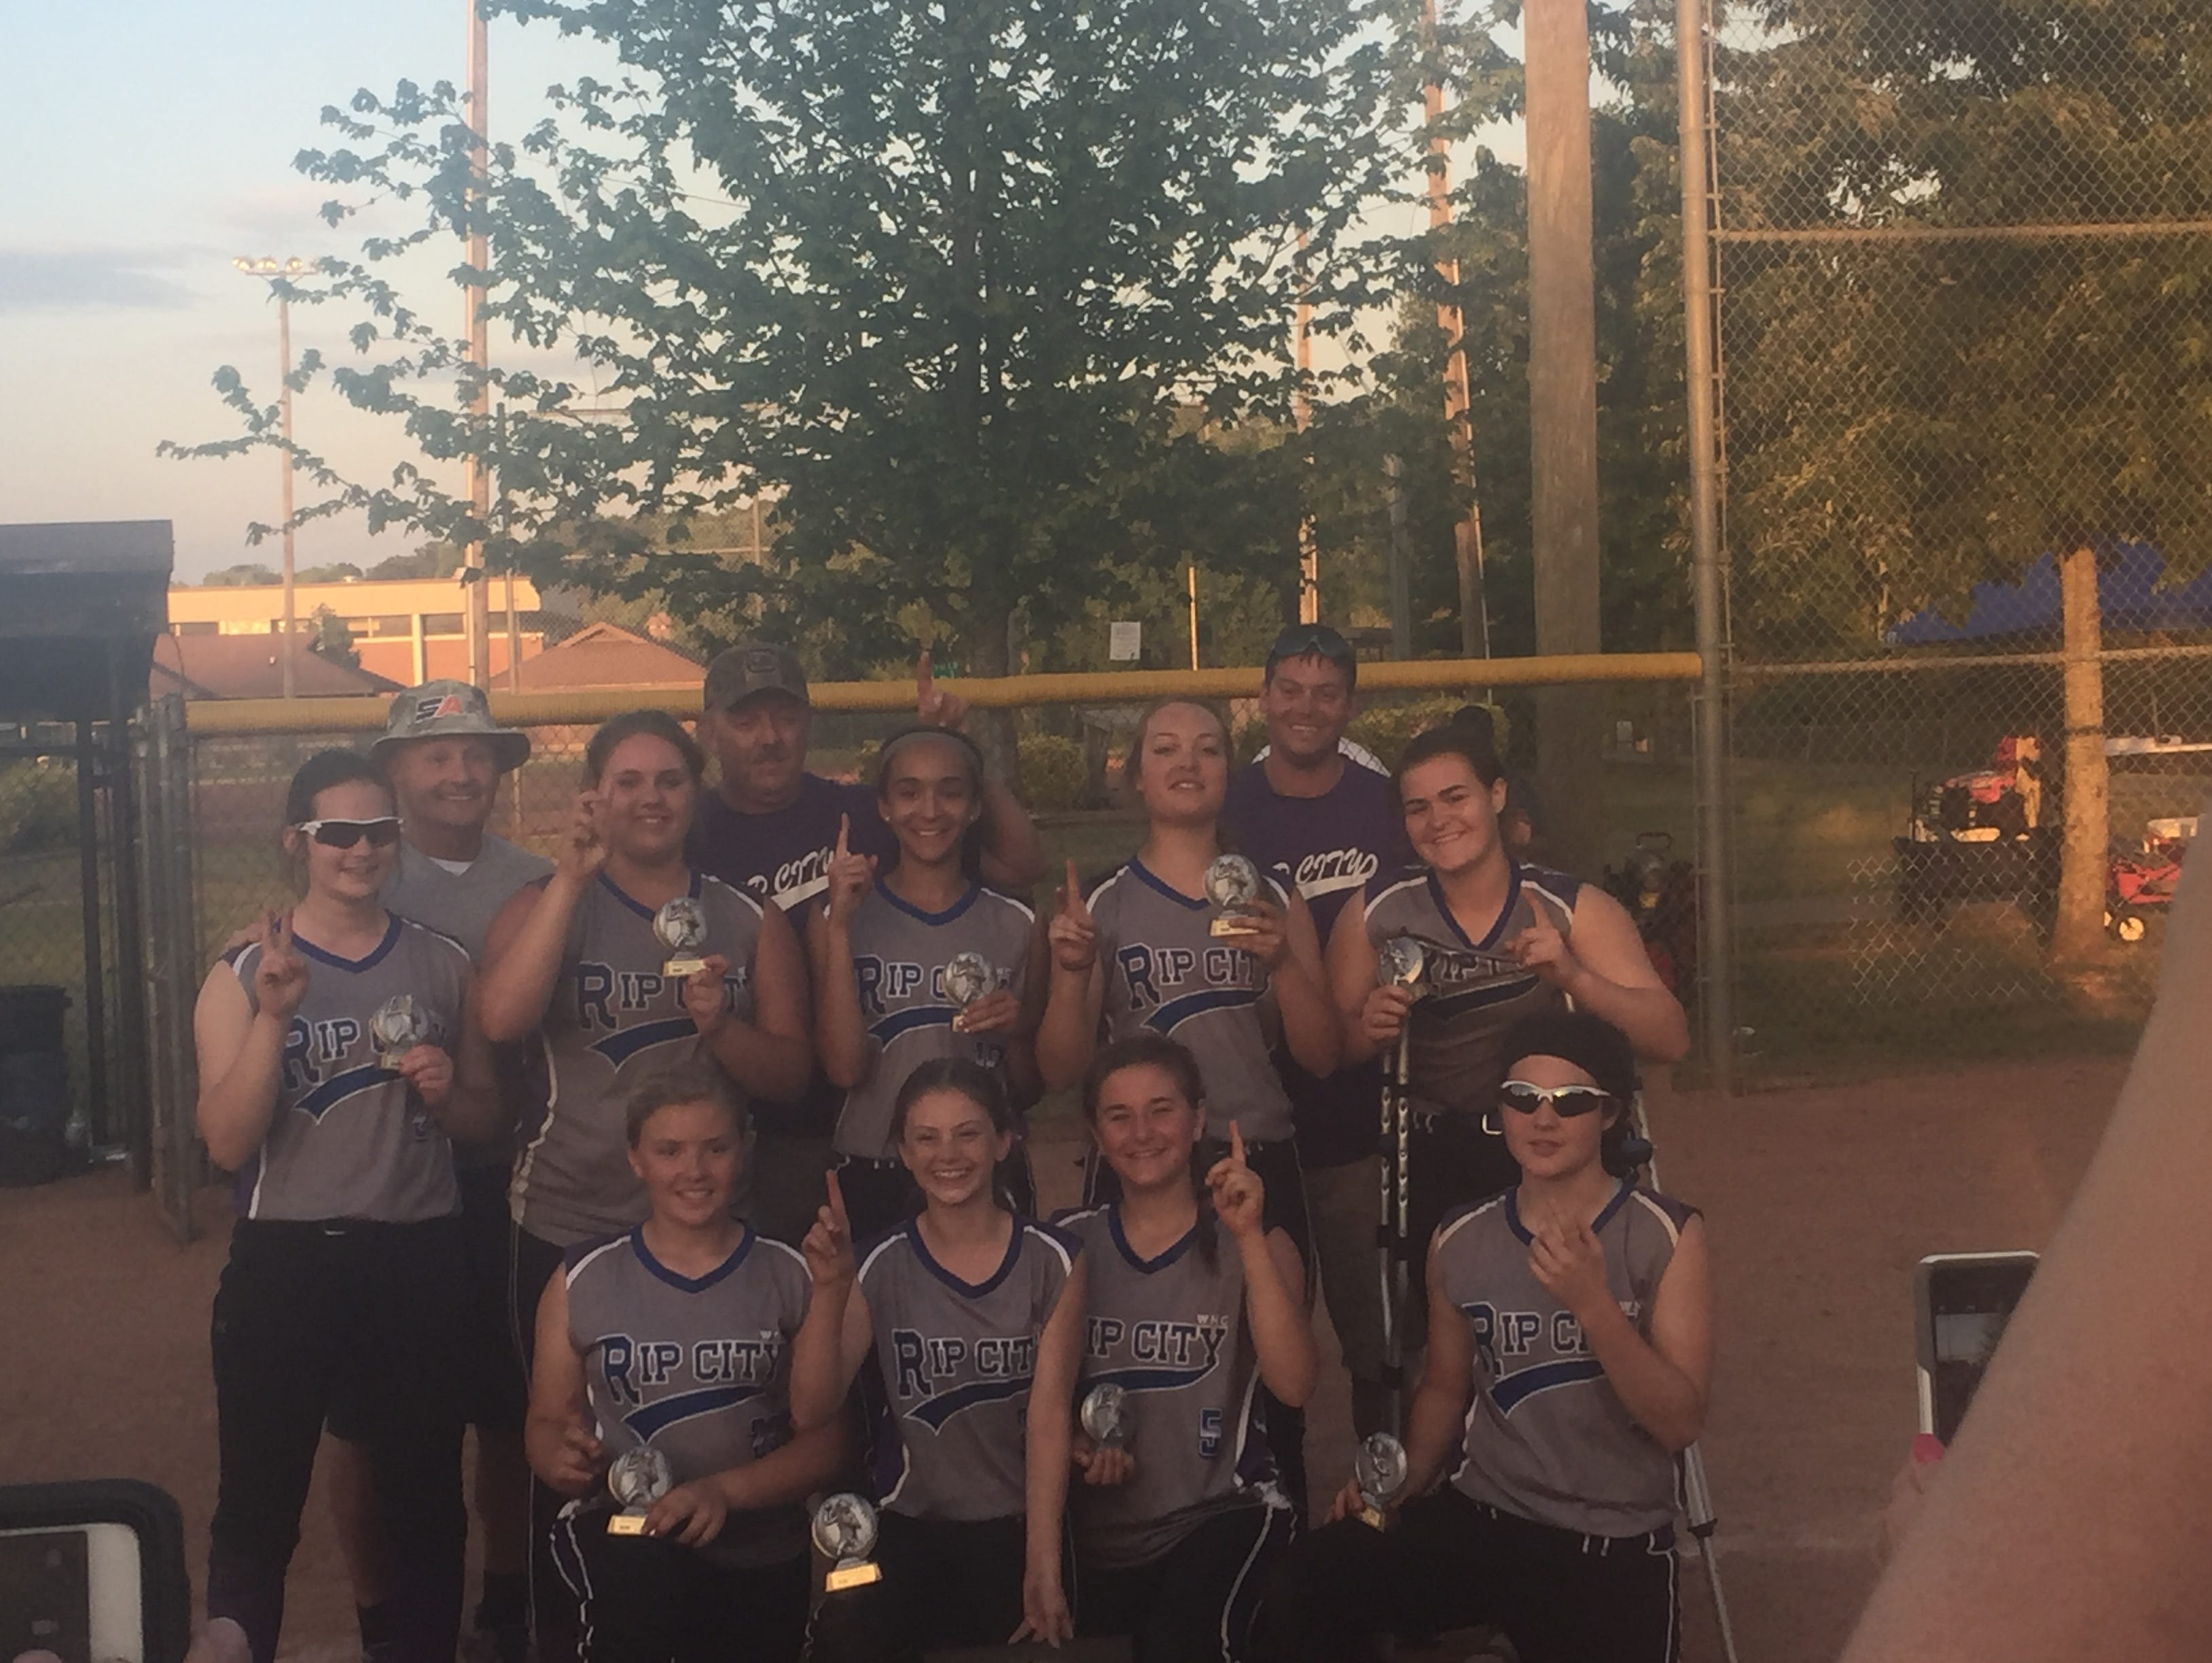 The Western North Carolina Rip City 14 and under softball team won the Top Gun Mothers Day Bash tournament on Sunday in Kings Mountain.